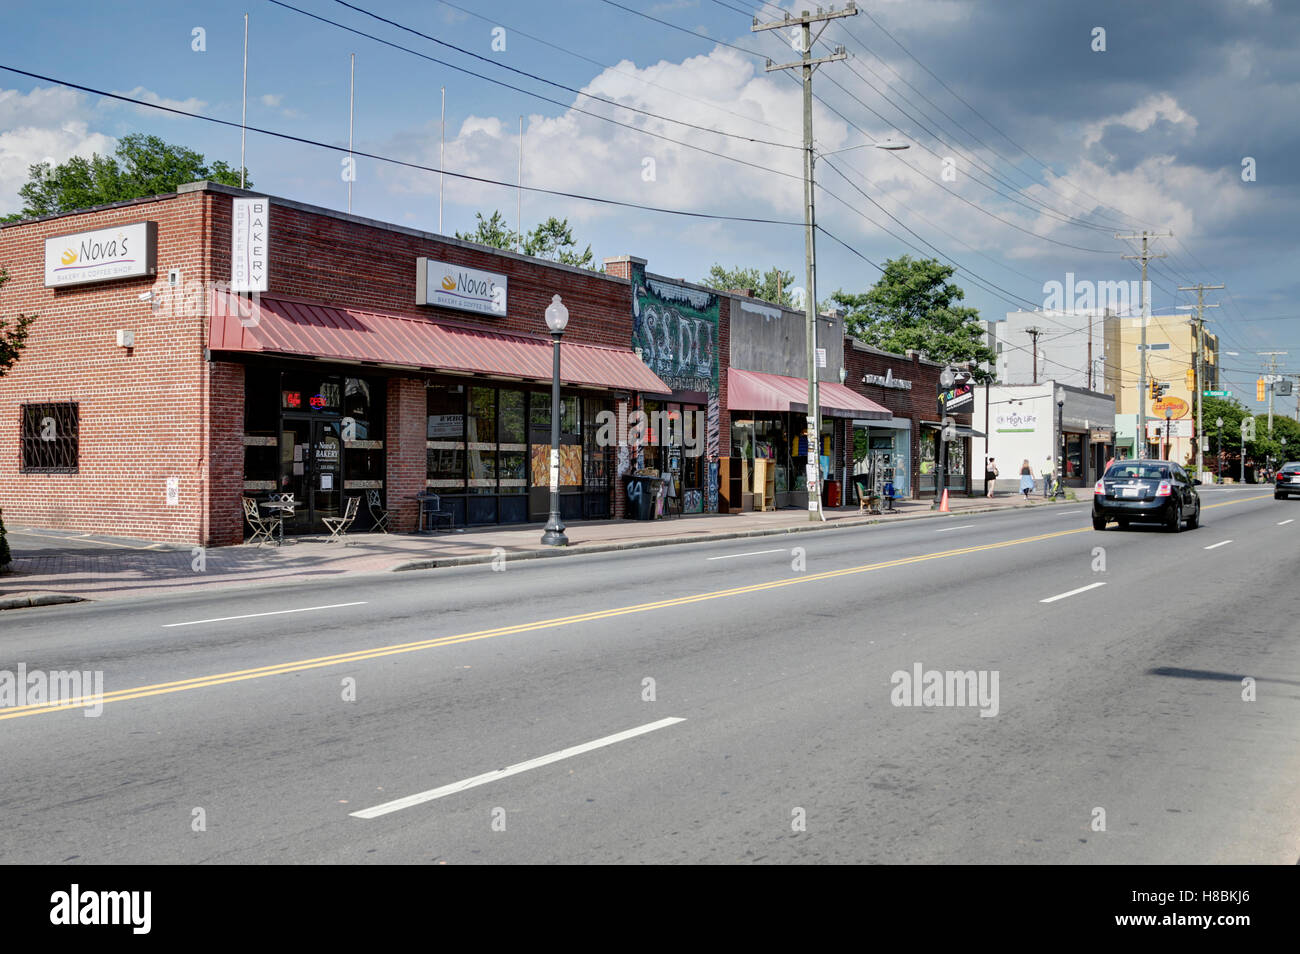 Central Avenue looking Northeast from Pecan Avenue in Plaza-Midwood, Charlotte, NC - Stock Image